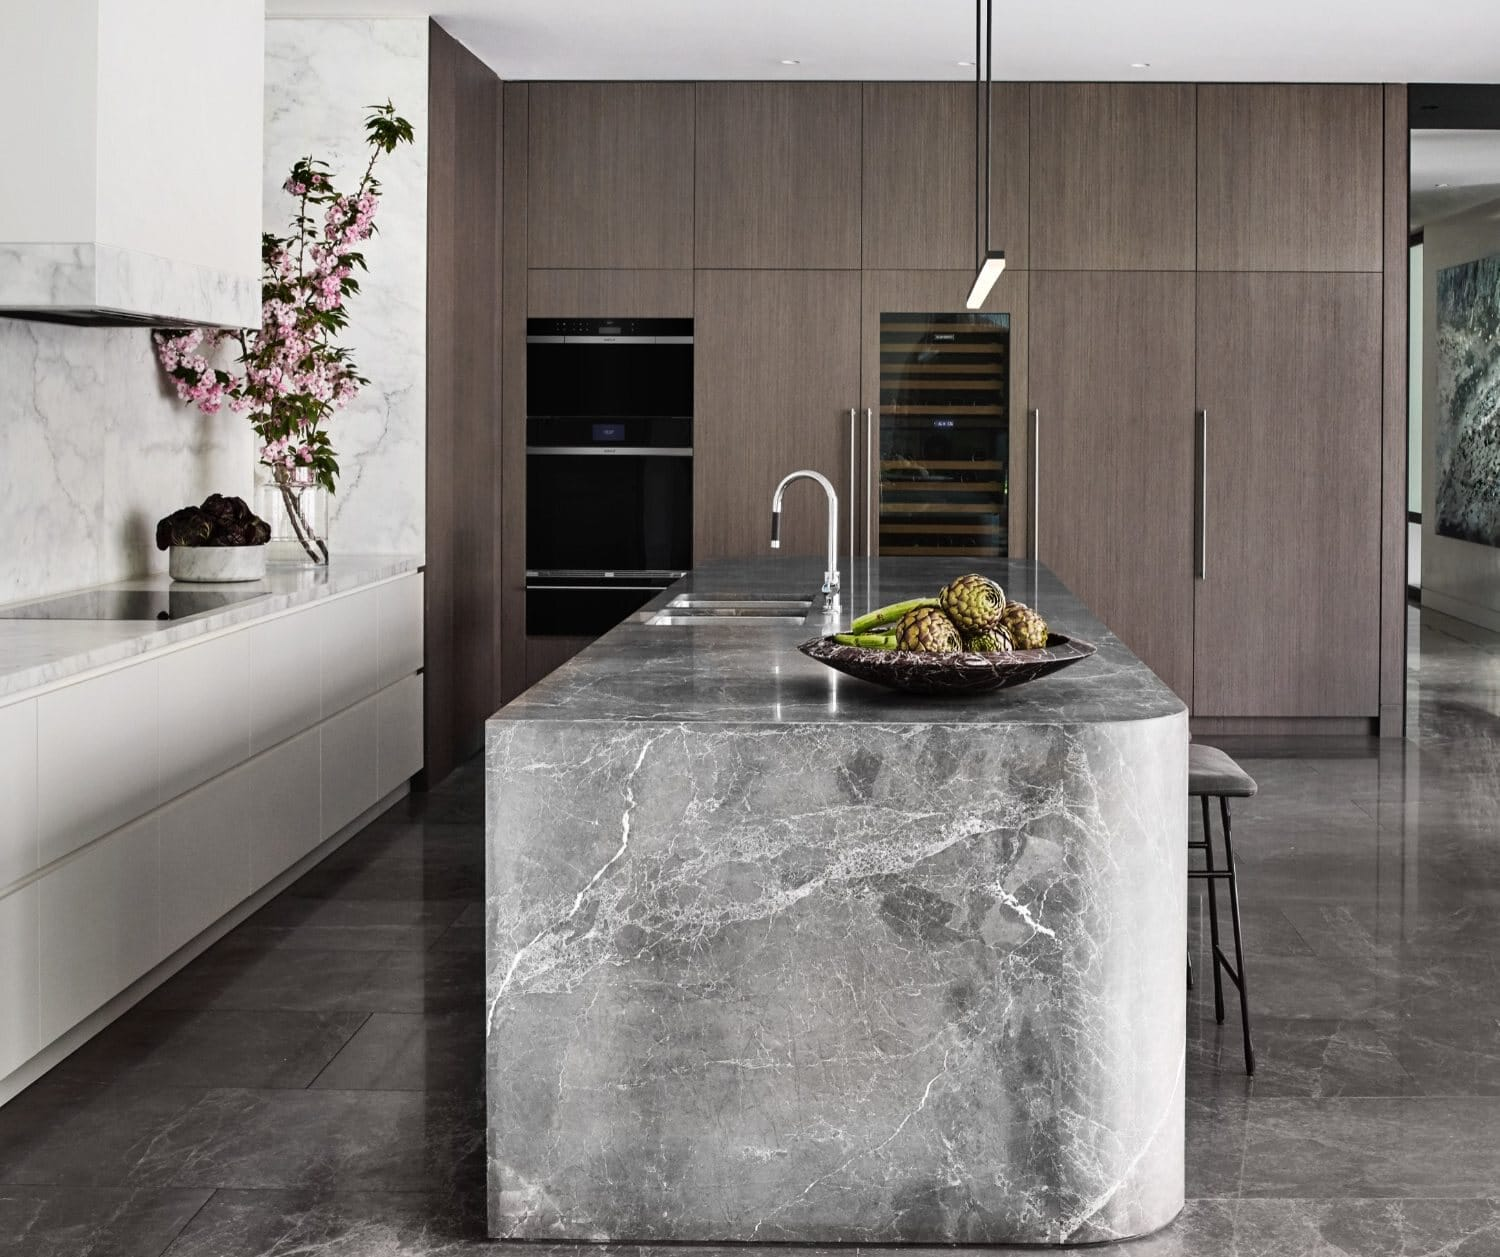 """Wolf 30"""" M Series Contemporary convection steam oven and built-in single oven; Wolf 36"""" Contemporary induction cooktop; Sub-Zero 30"""" Designer wine storage, column refrigerator and freezer, prices upon request; design by Miriam Fanning"""